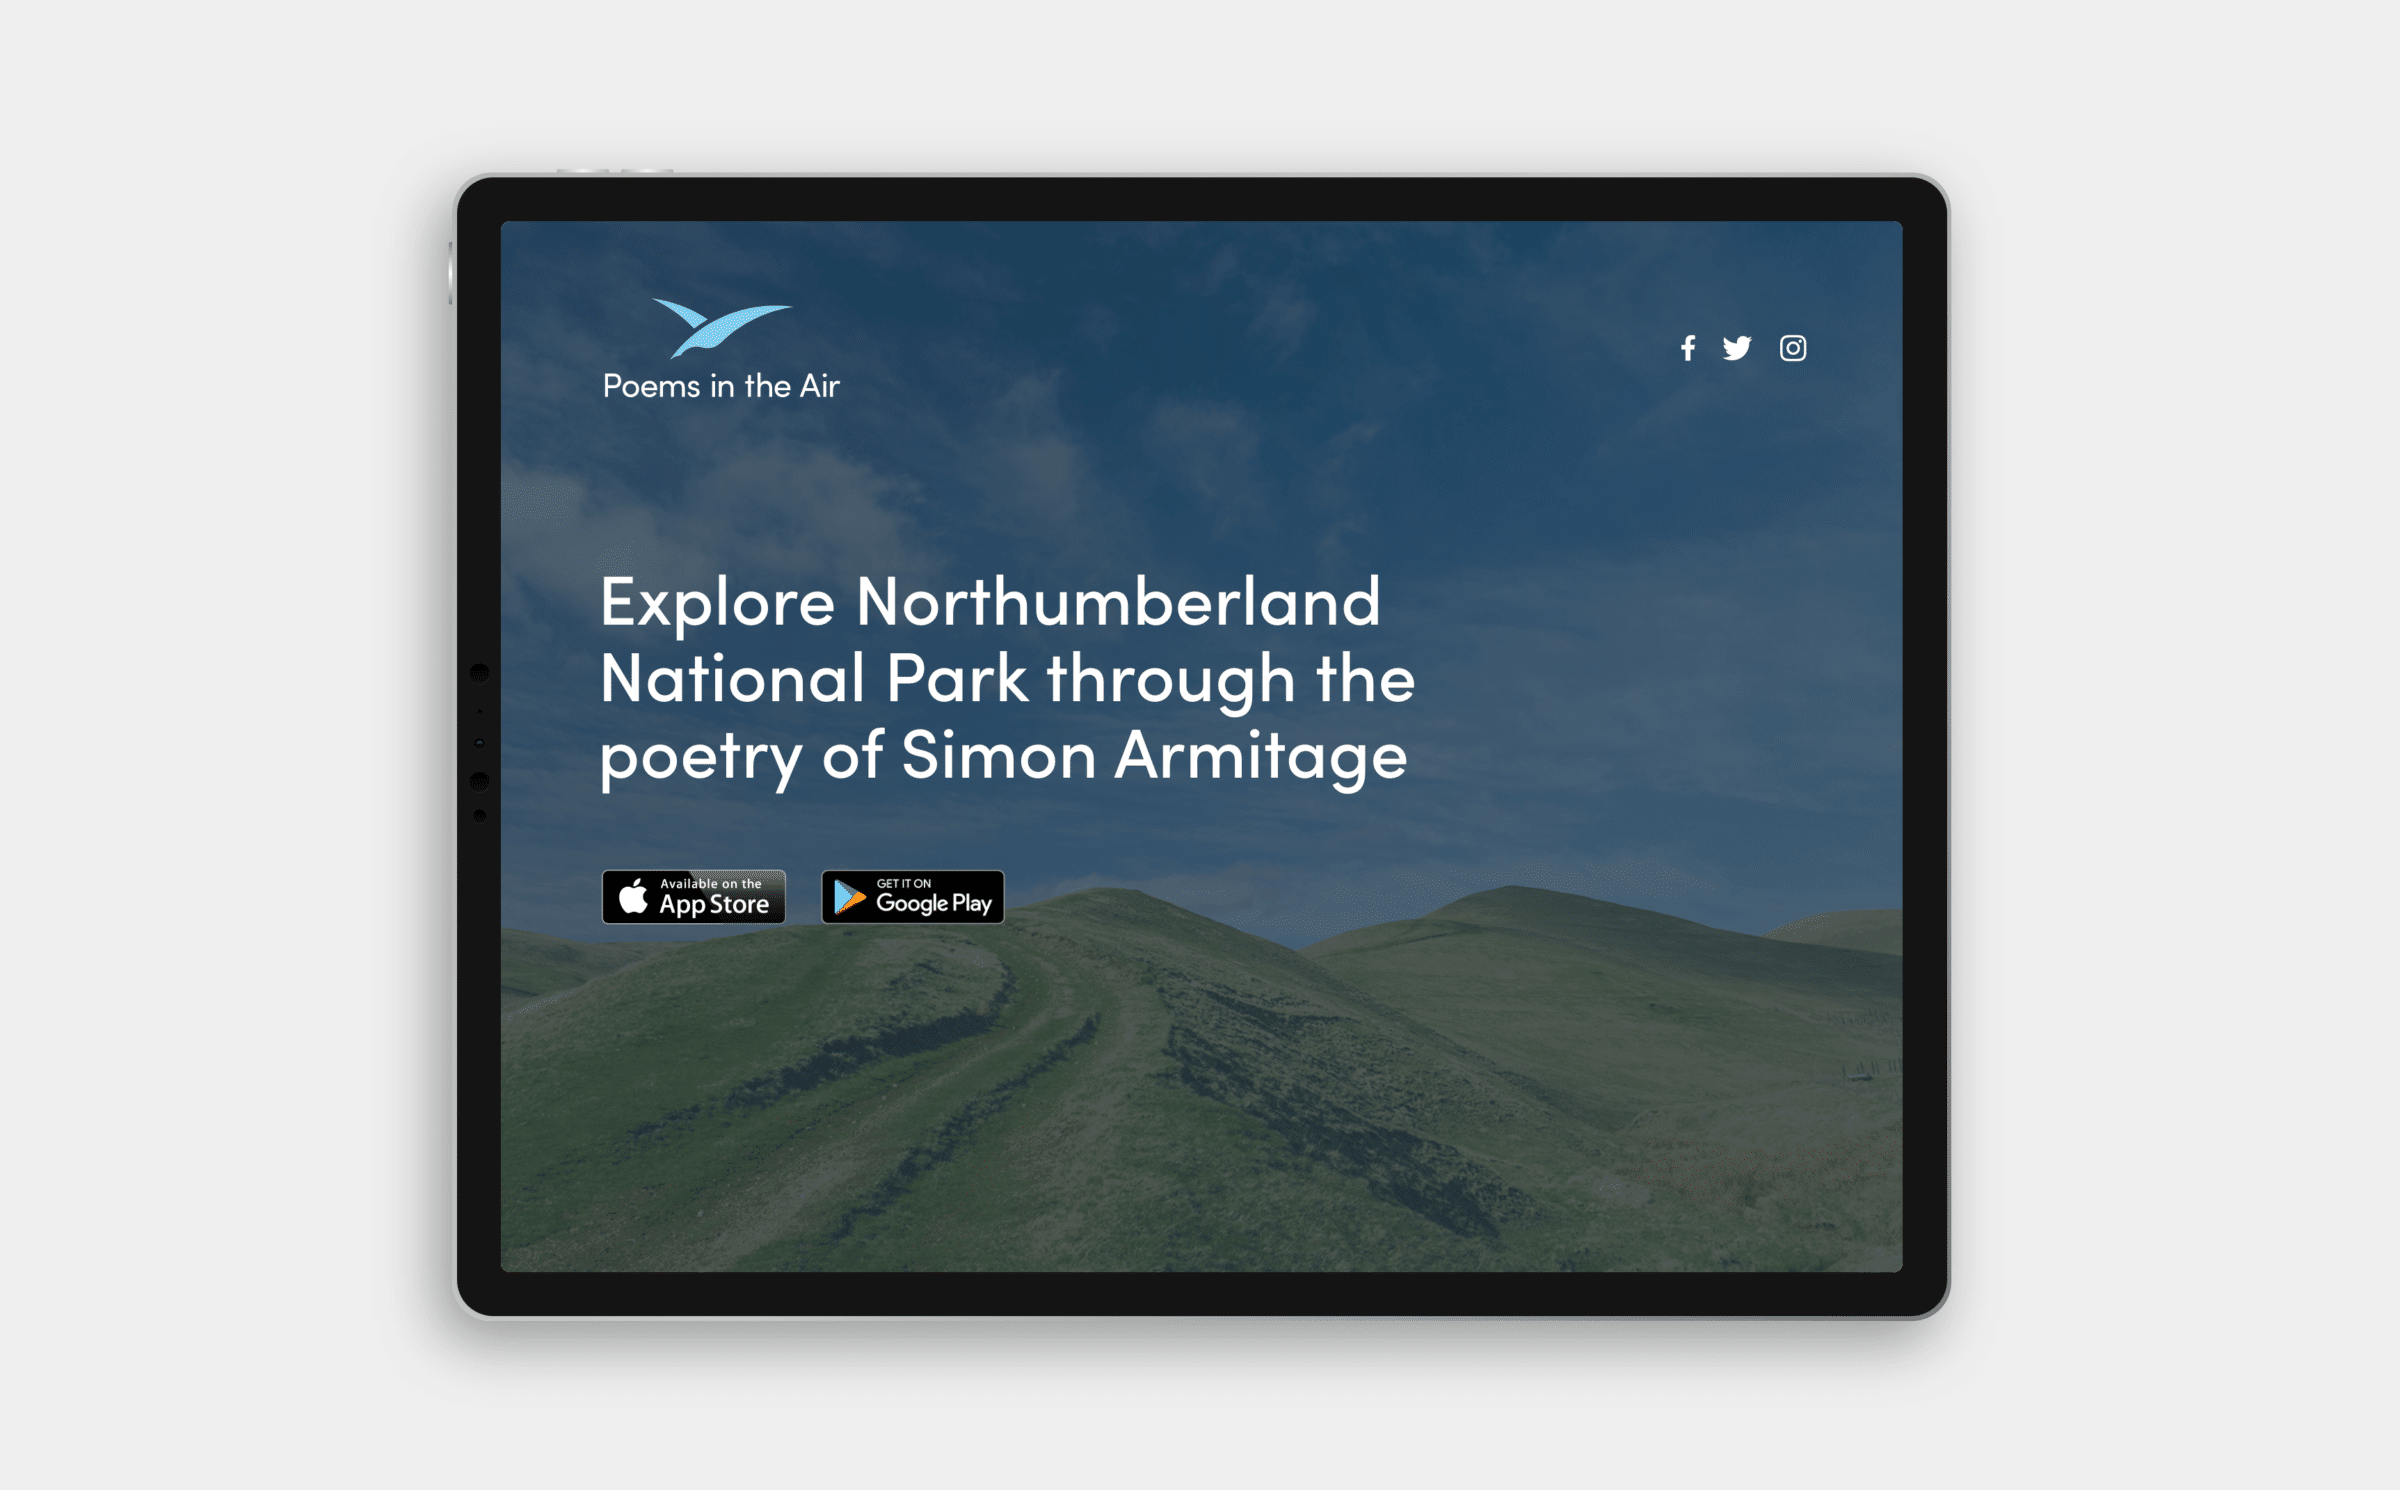 Website design for the Poems in the Air app